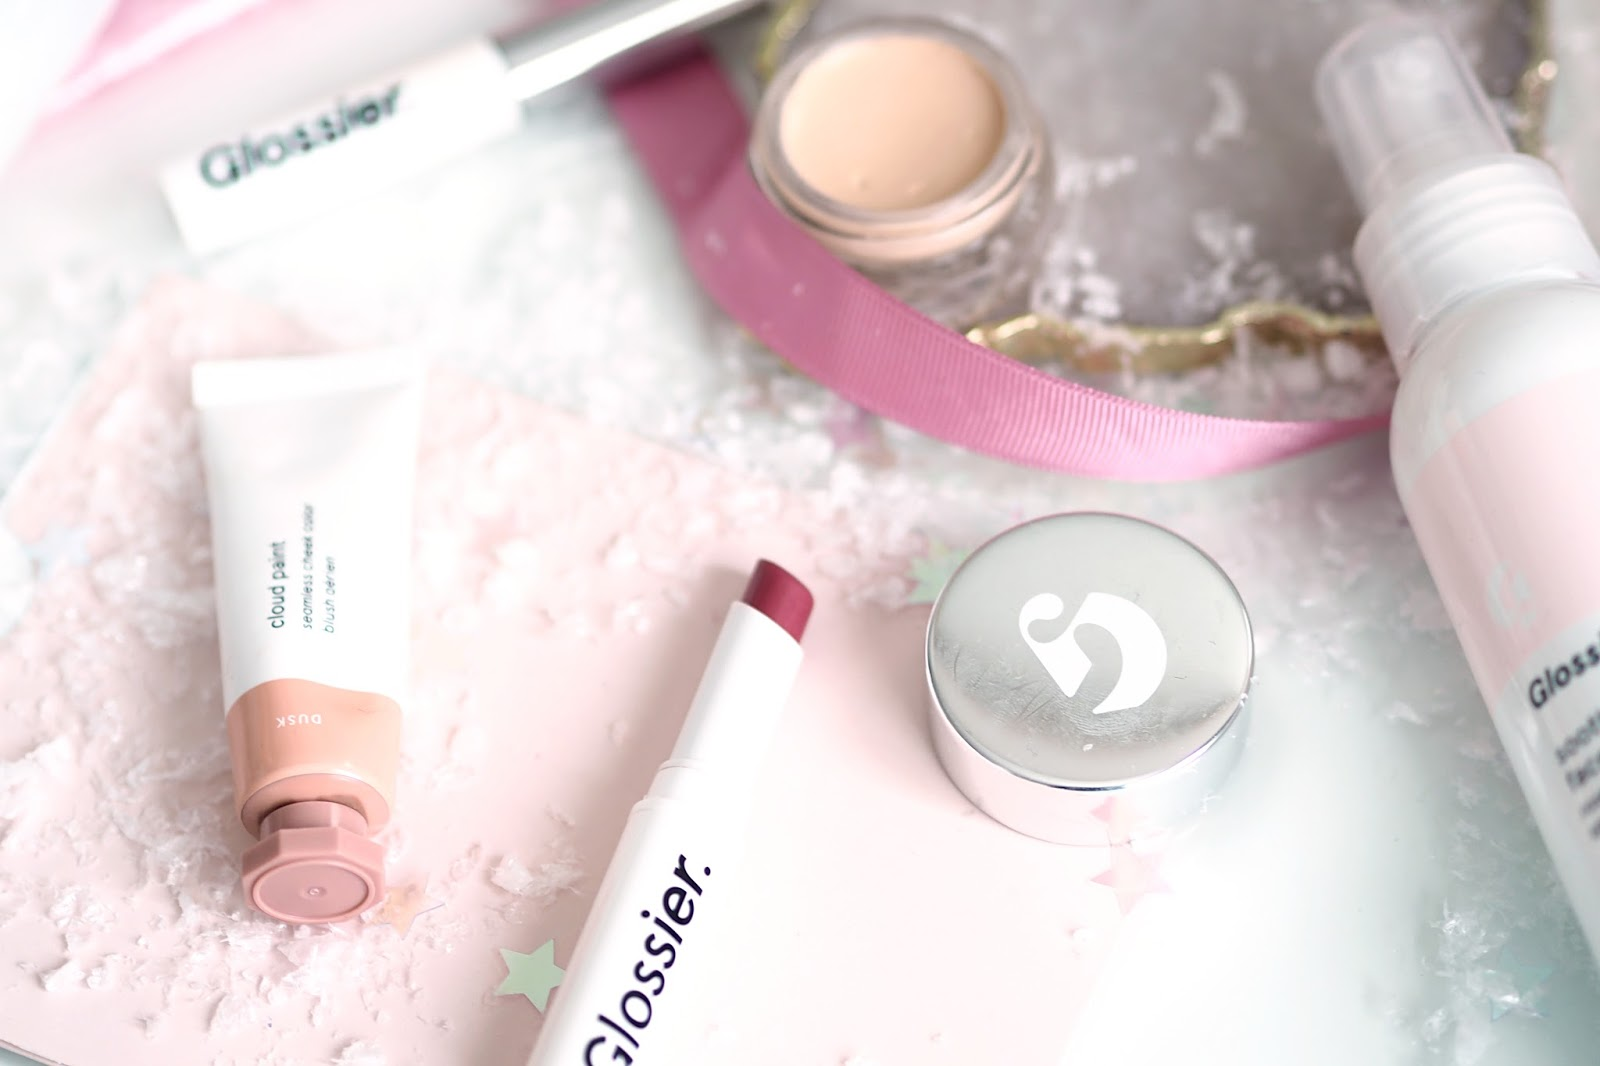 Glossier Haul and UK Pop-Up Store!